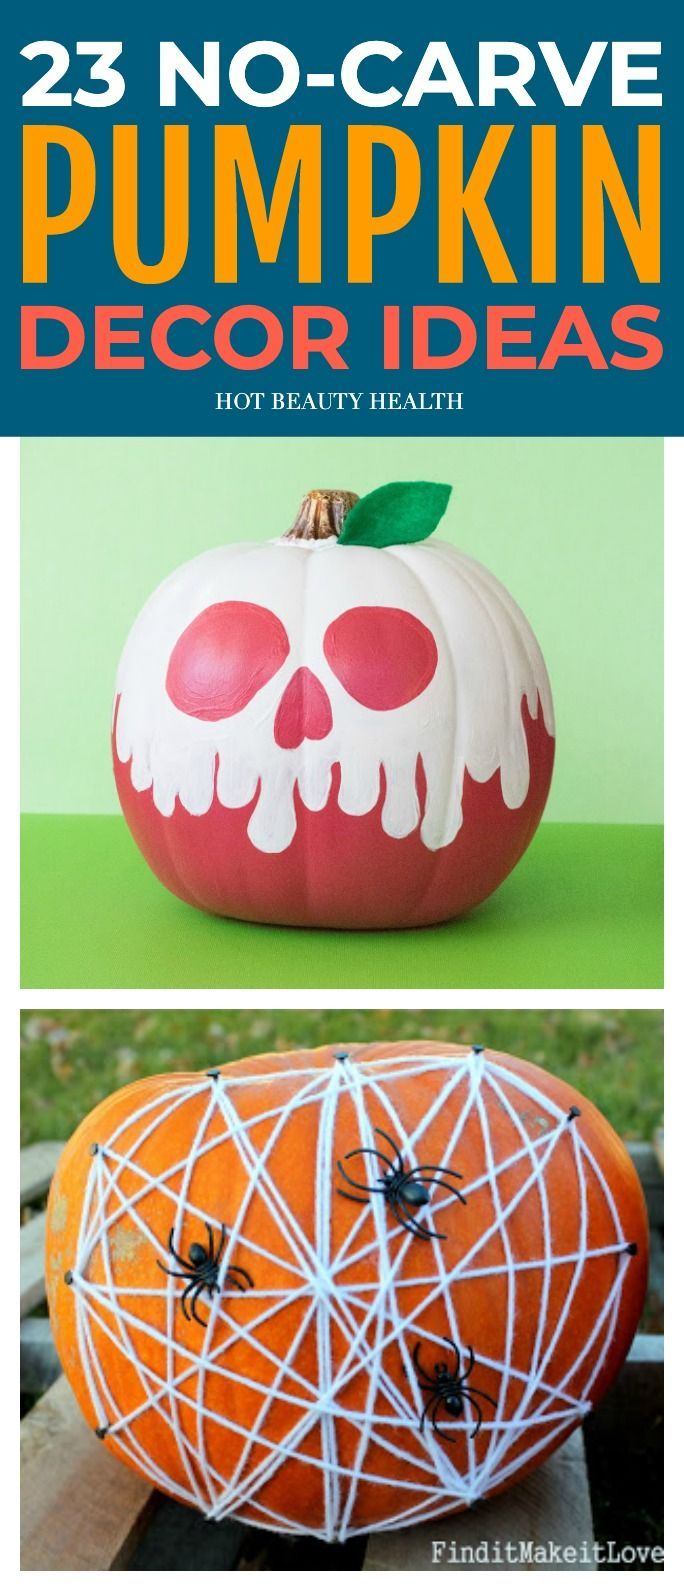 23 No Carve Pumpkin Decorating Ideas That Are Totally Doable